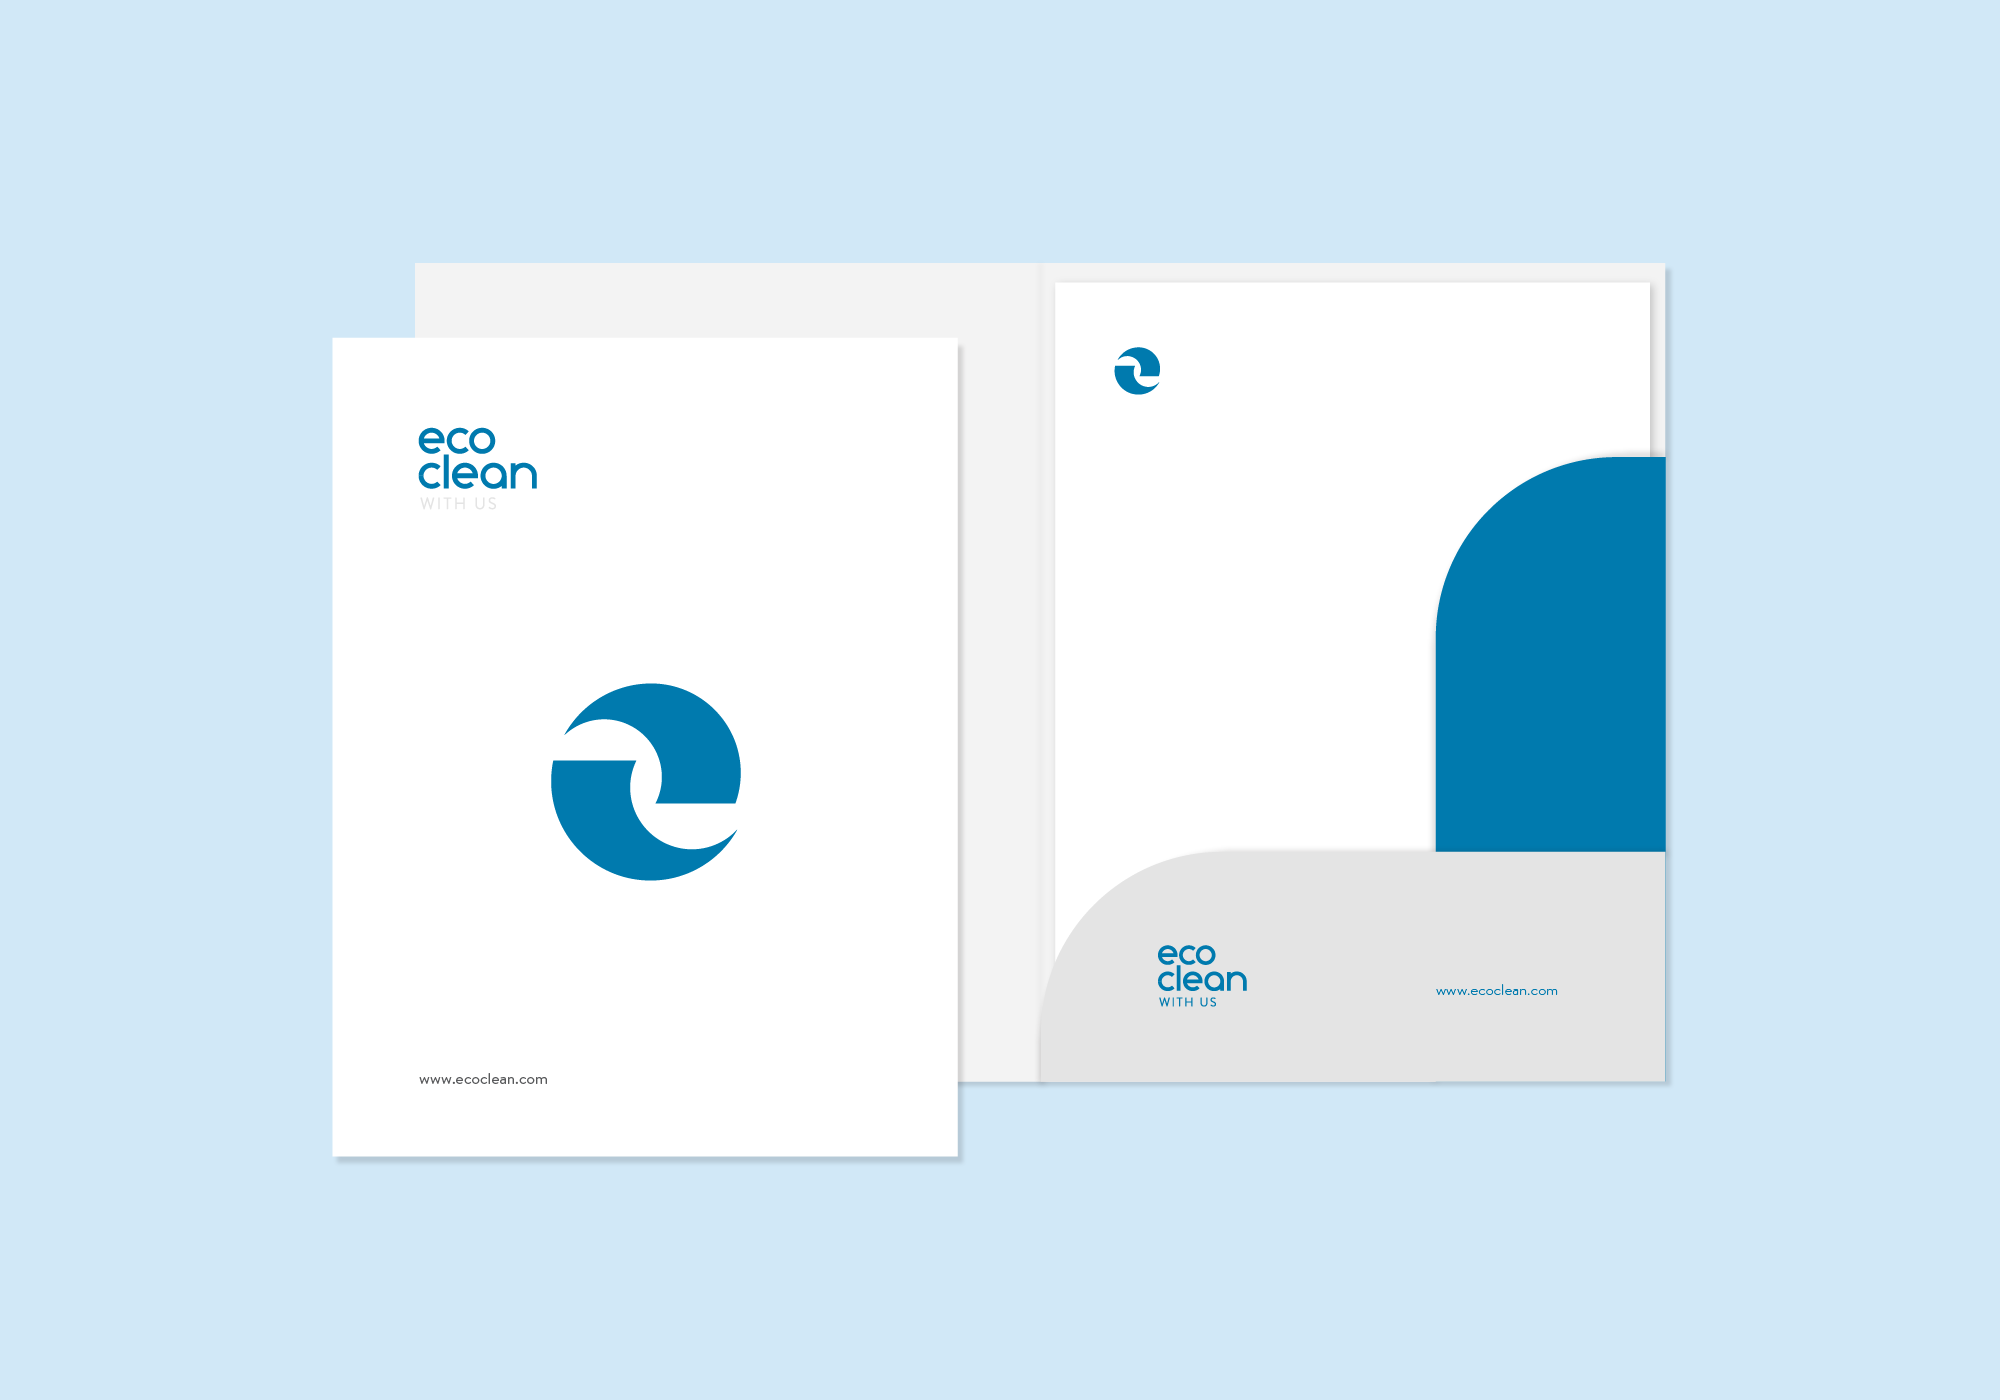 eco clean - Visual Branding